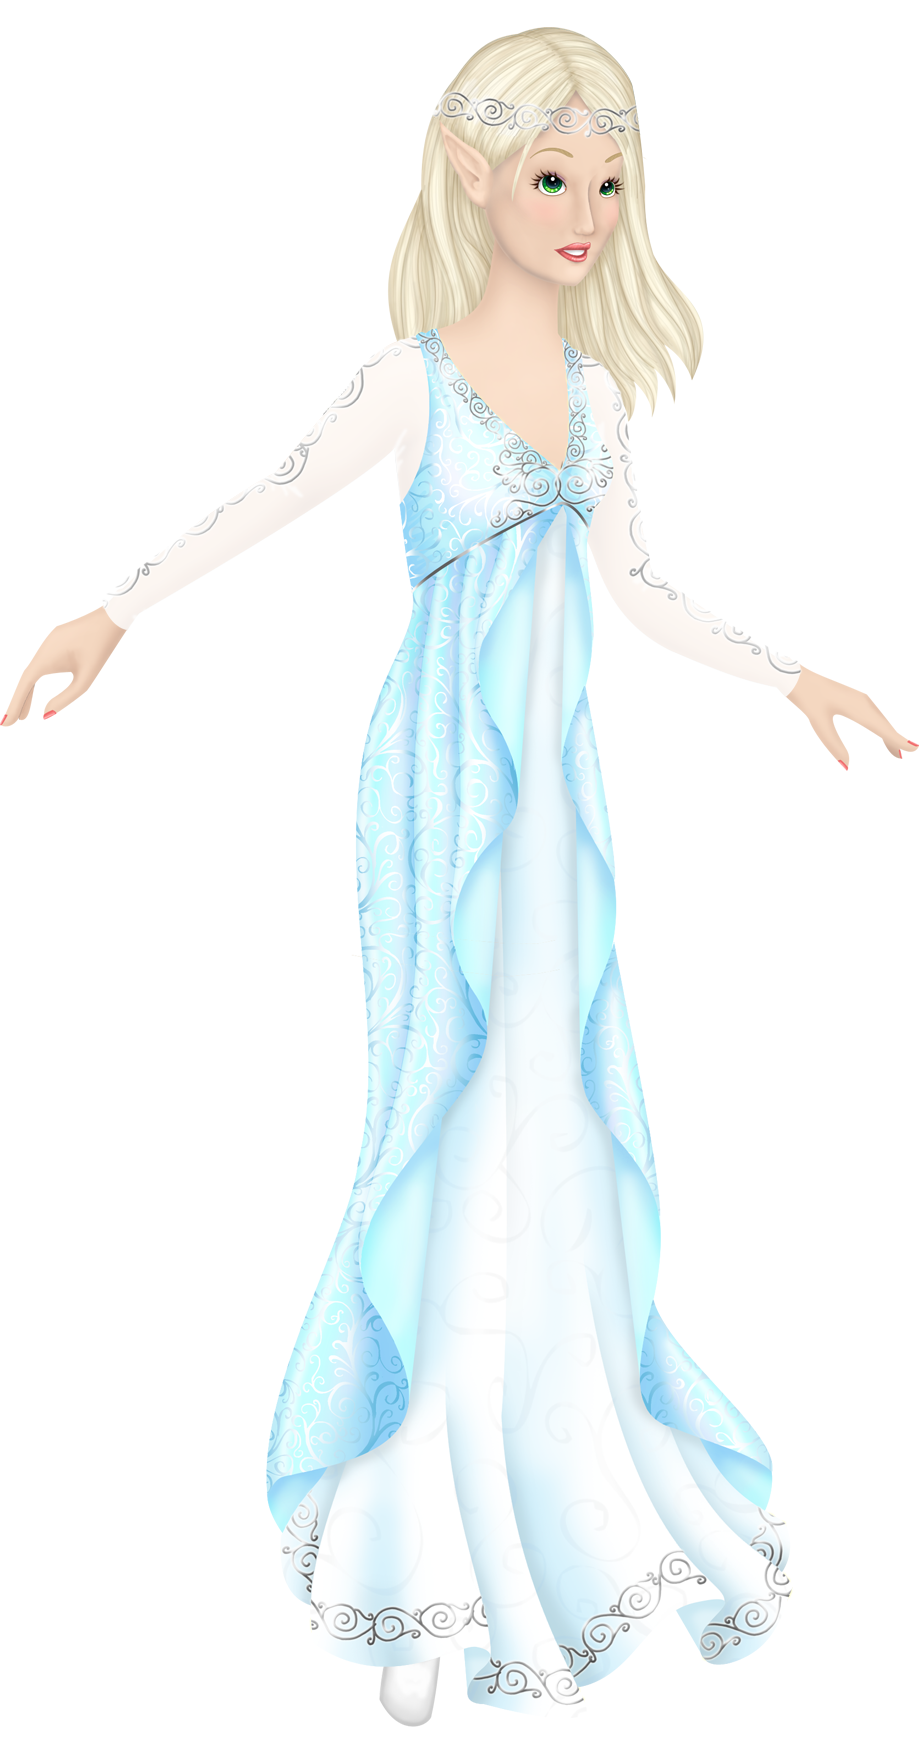 Liana's Paper Dolls Christmas 2014 Aelinora -- download for free until December 28! An adult female elf paper doll with straight blonde hair and green eyes. She's wearing a light blue dress with a V neck and an empire waist. The sleeves are long and semi-transparent, with silver designs up and down the arms, and the overskirt is open in the front, showing a light blue underskirt bordered with silver scrolls.